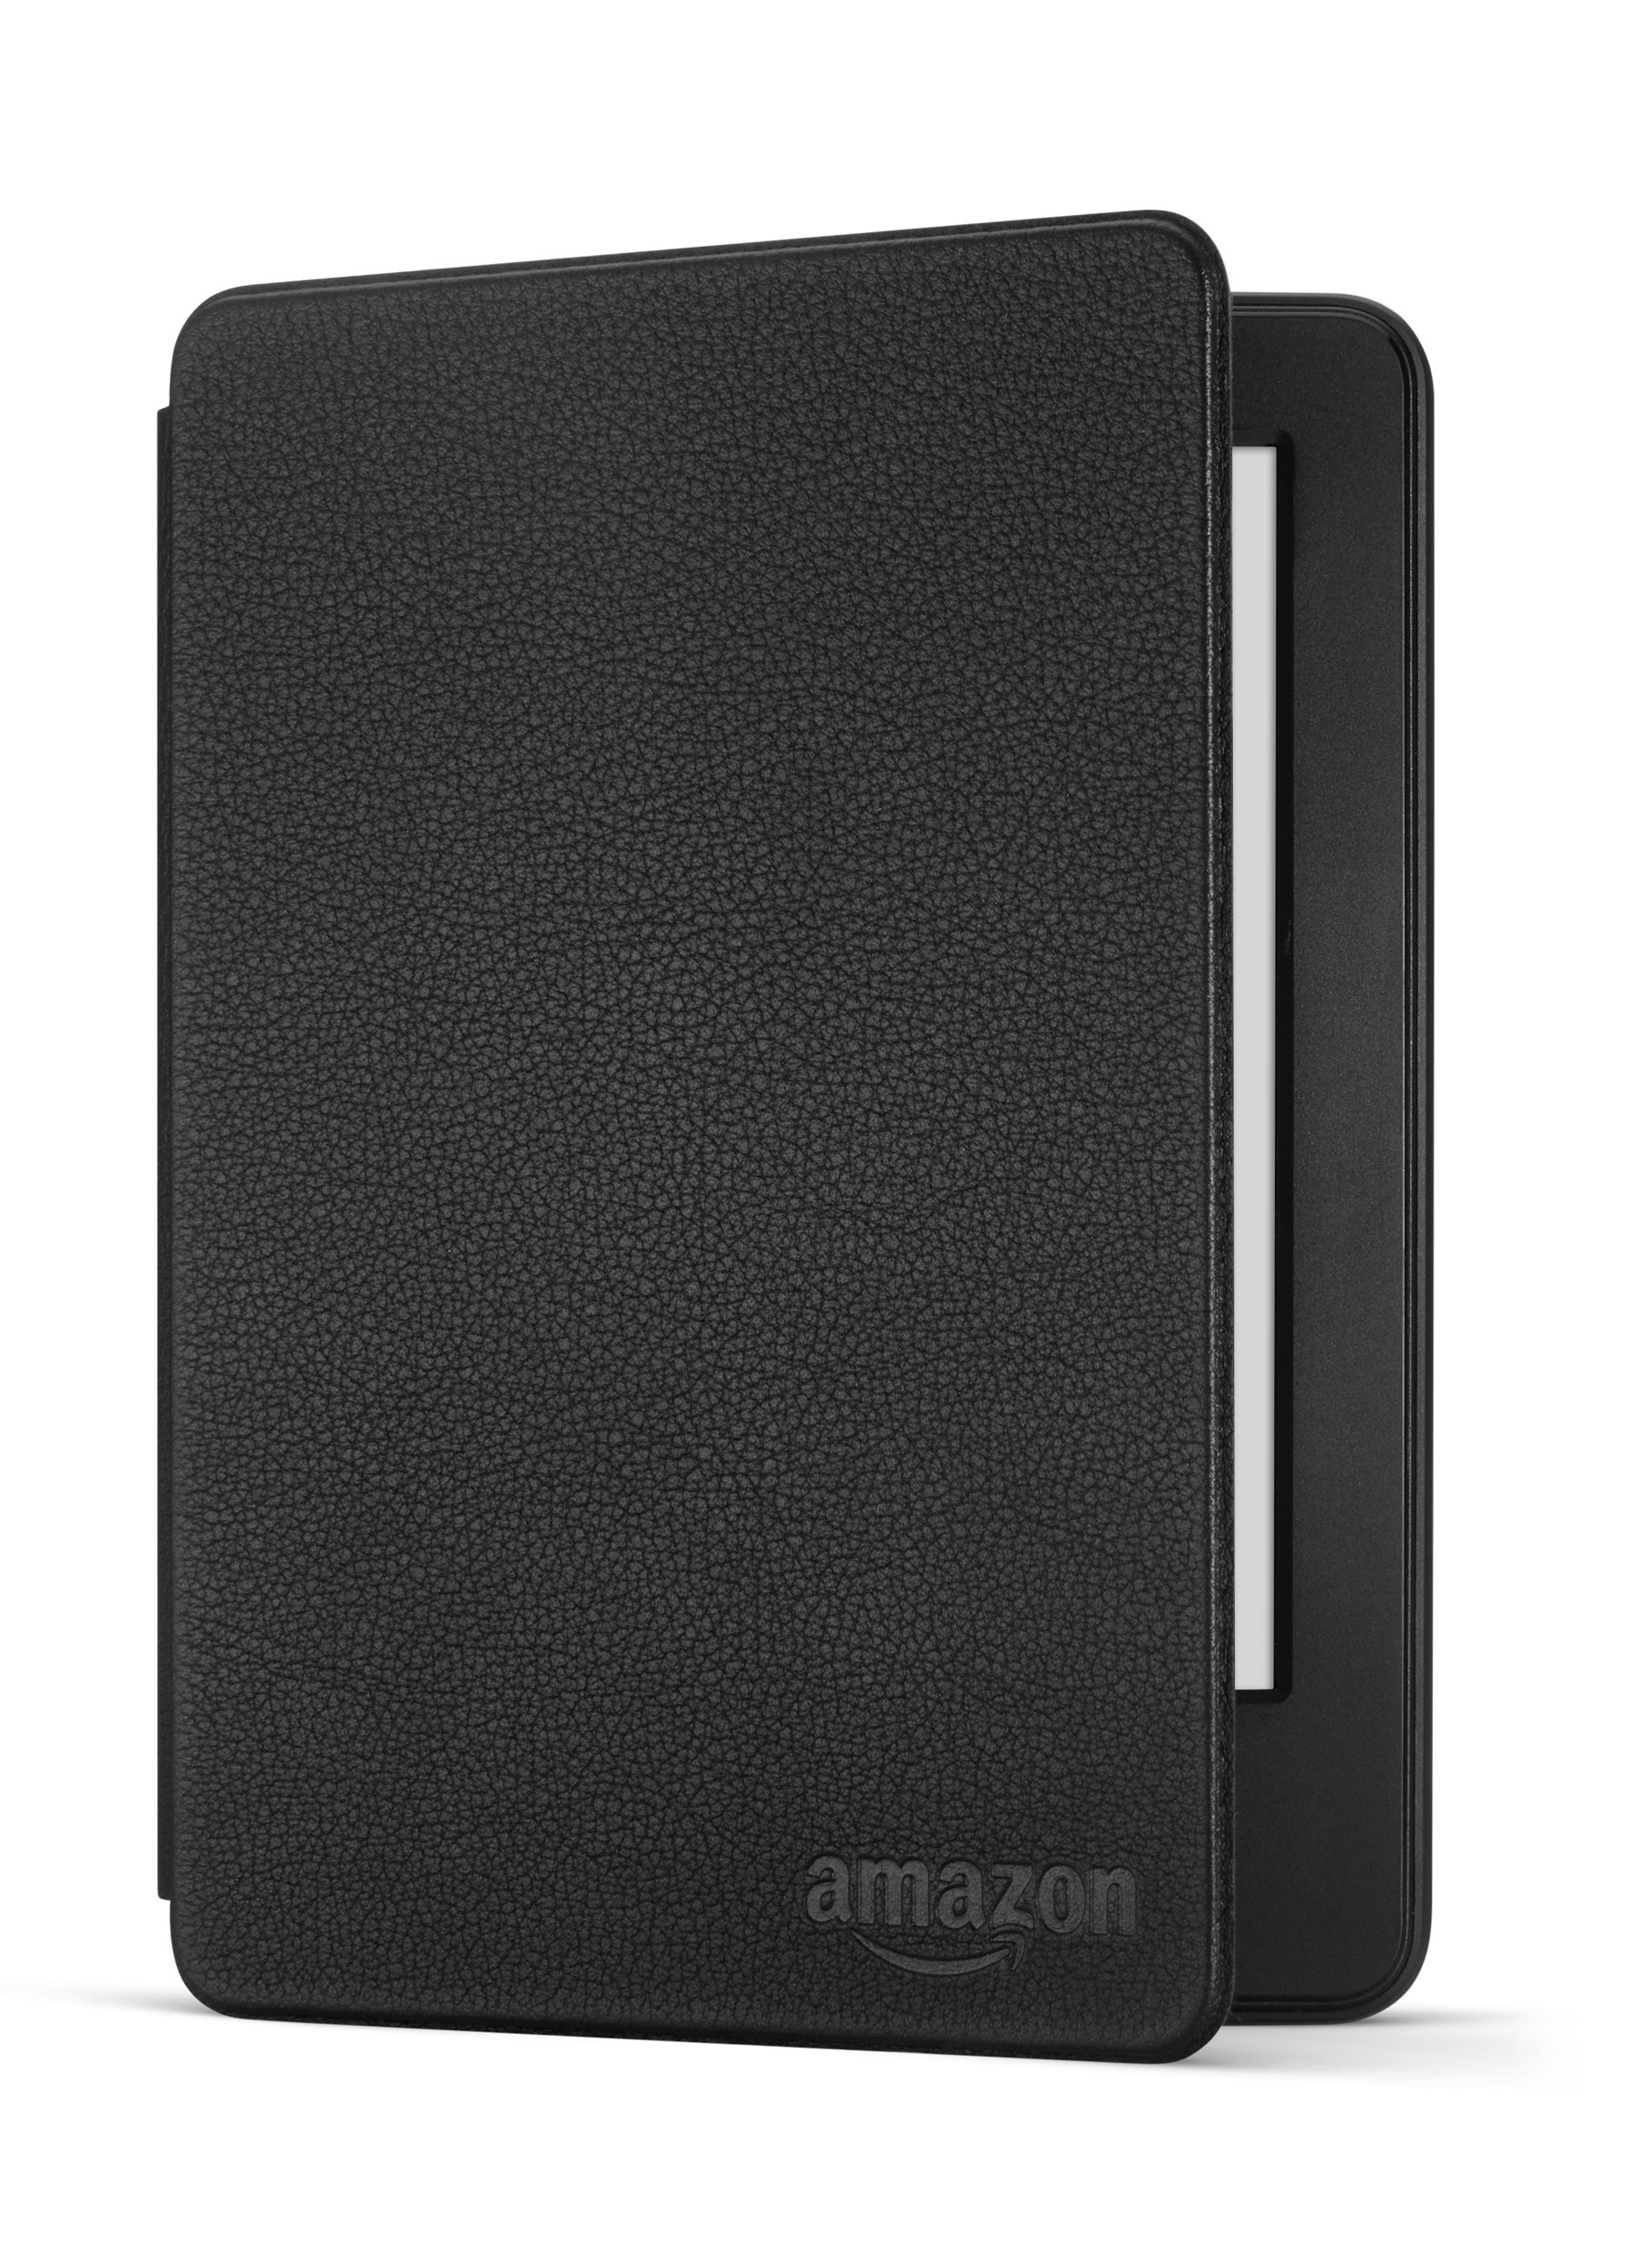 Amazon Protective Leather Cover for Kindle (7th Generation, 2015), Black - will not fit 8th Generation or previous generation Kindle devices or Kindle Paperwhite